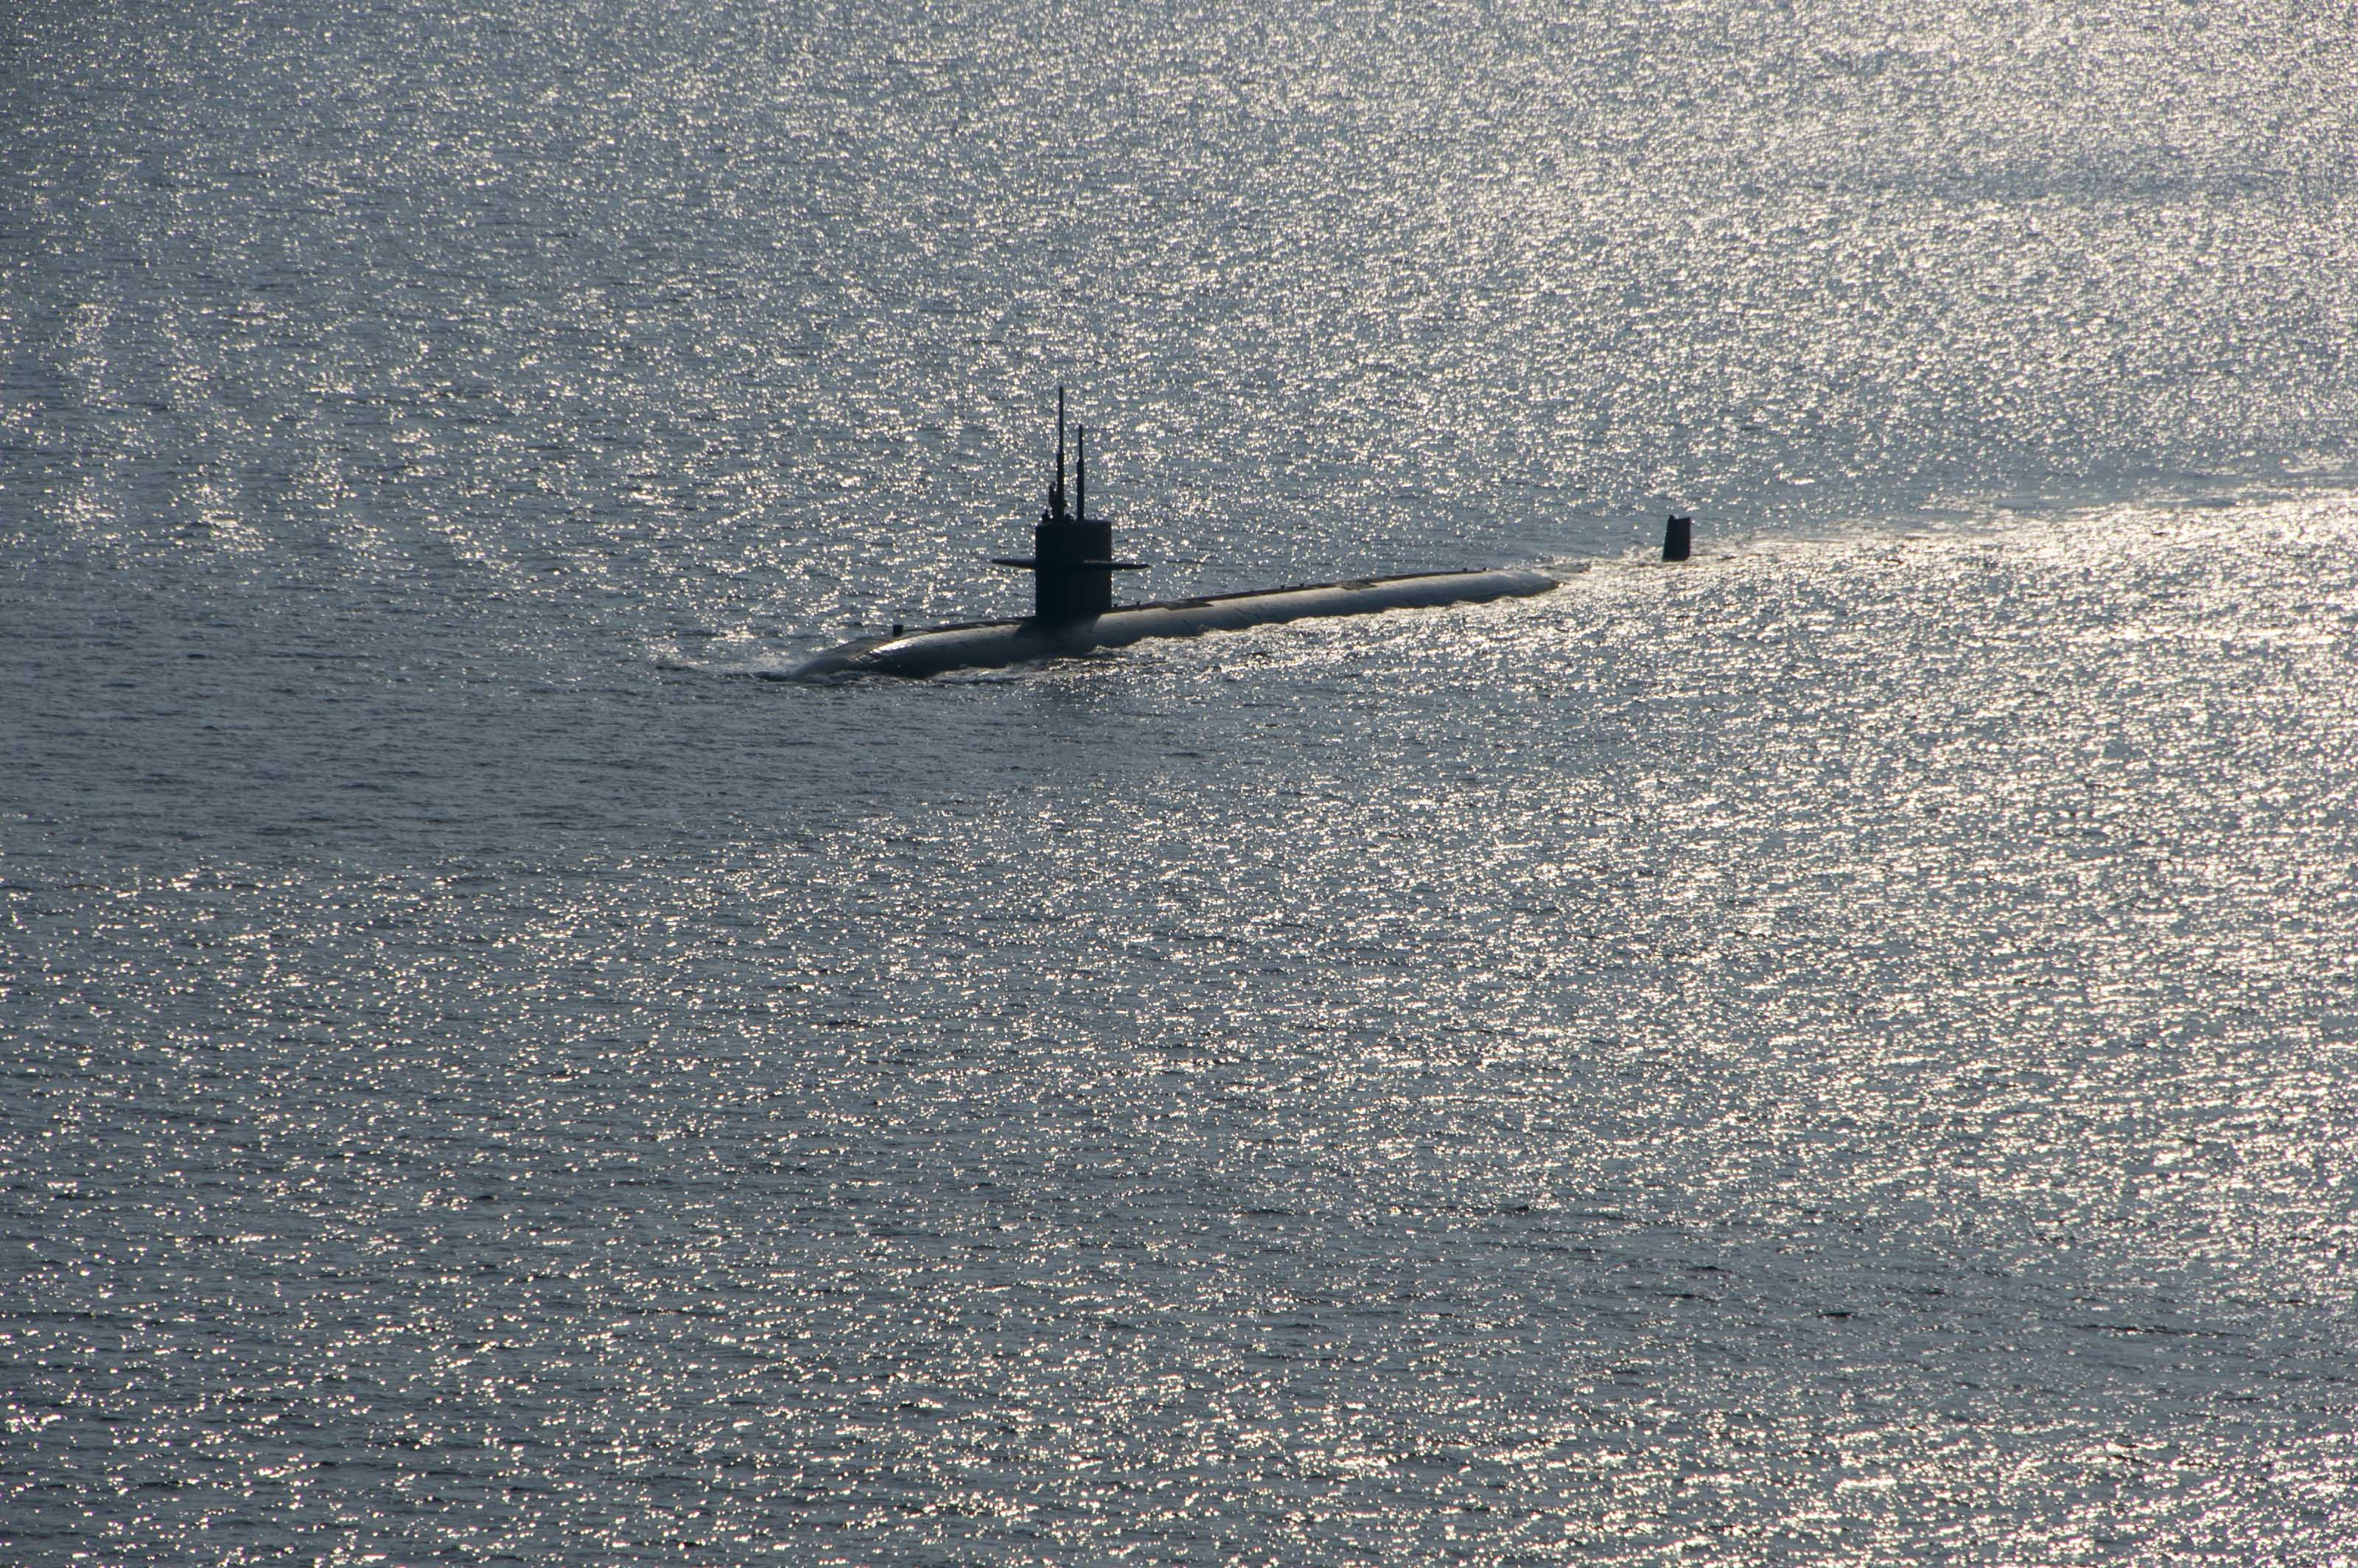 The Los Angeles-class attack submarine USS City of Corpus Christi (SSN-705) transits into formation during a photo exercise as a part of Exercise Malabar 2015 on Oct. 16, 2015. US Navy Photo